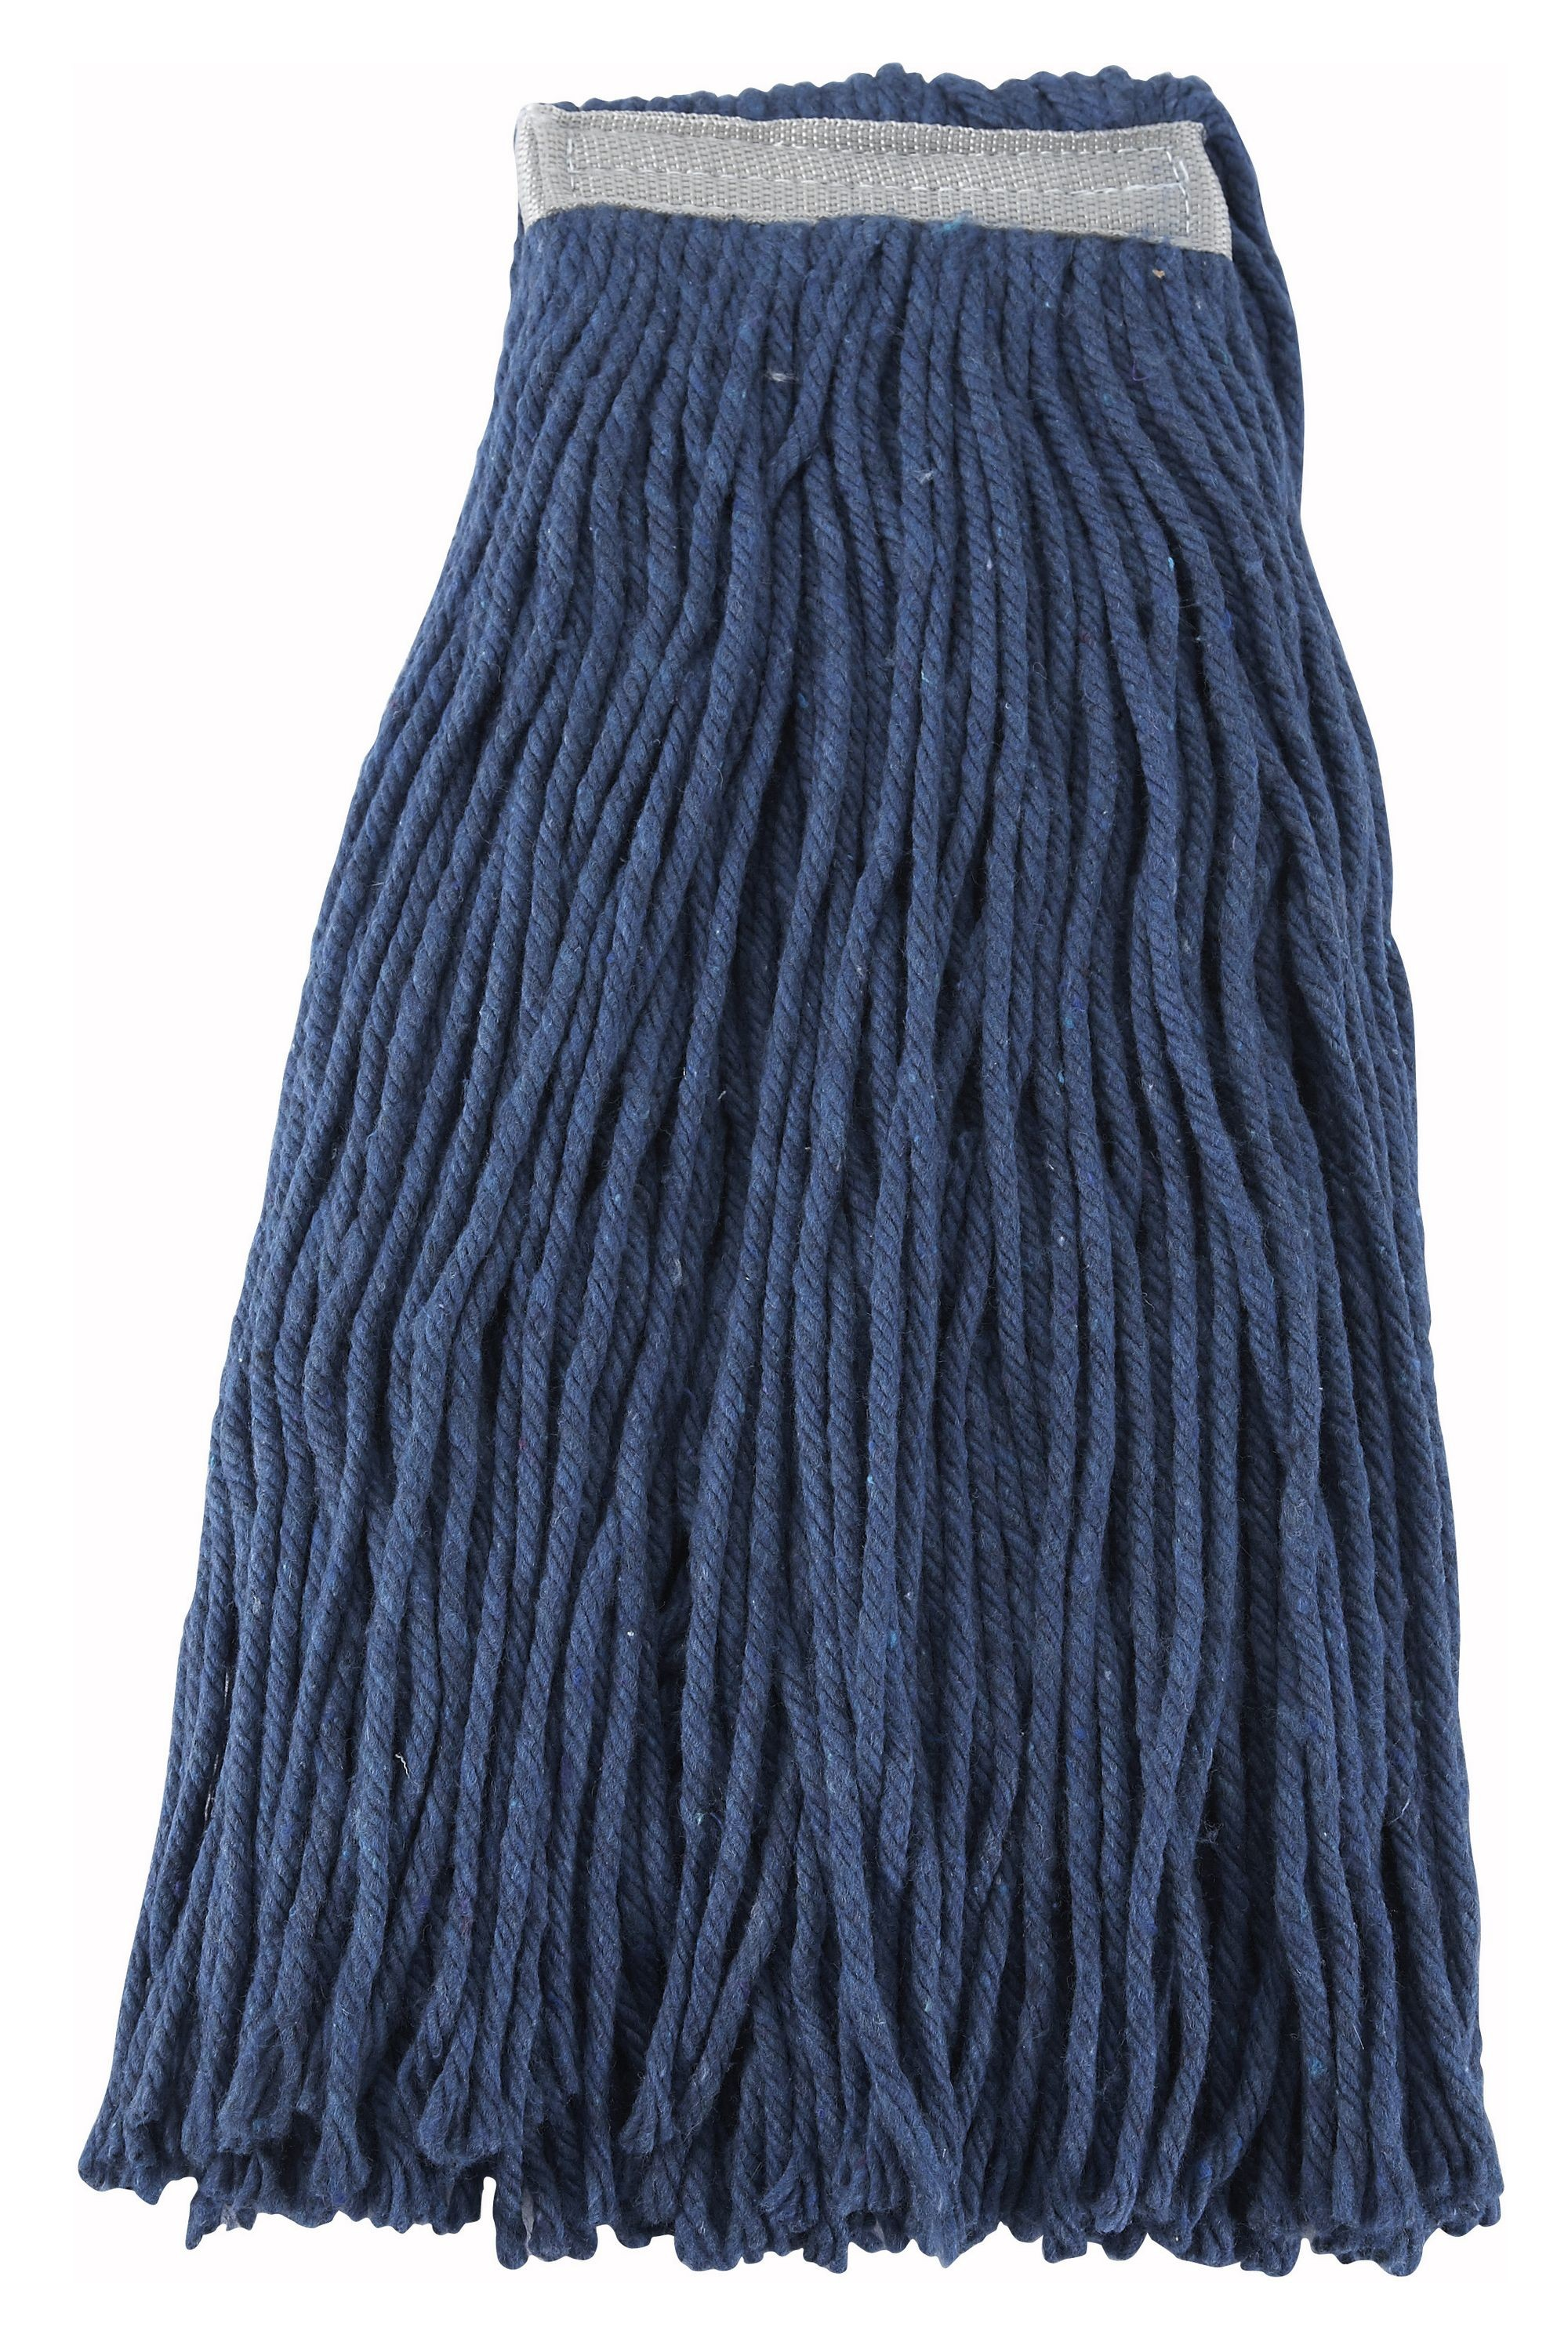 Winco MOP-24C Blue Yarn Mop Head, Cut Head 600g, 24 oz.